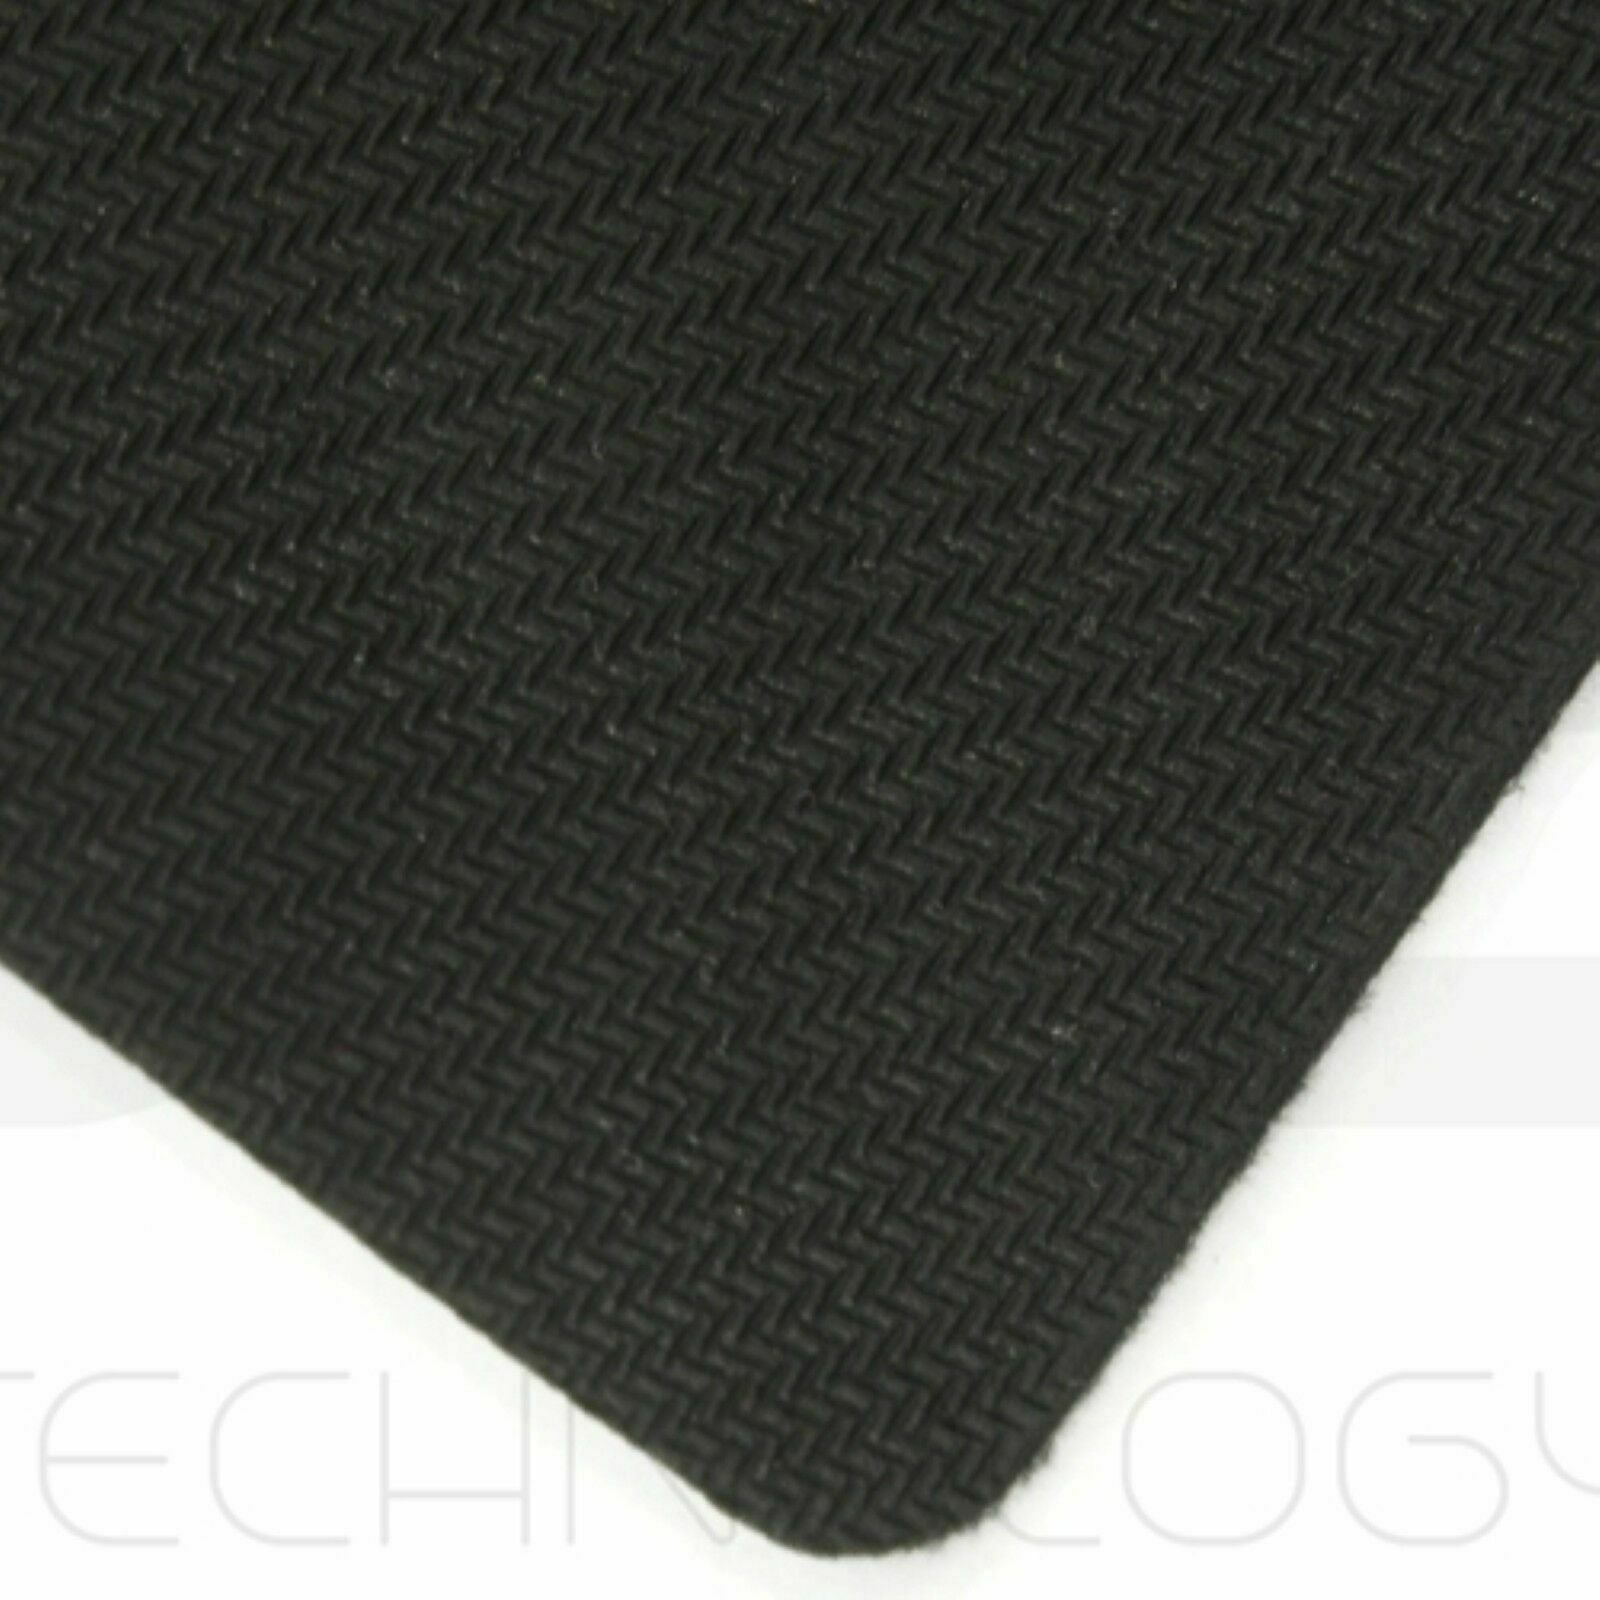 DIS Technology - Large Mouse Pad Desk Laptop Keyboard Mat Anti-slip PC Mouse Pad